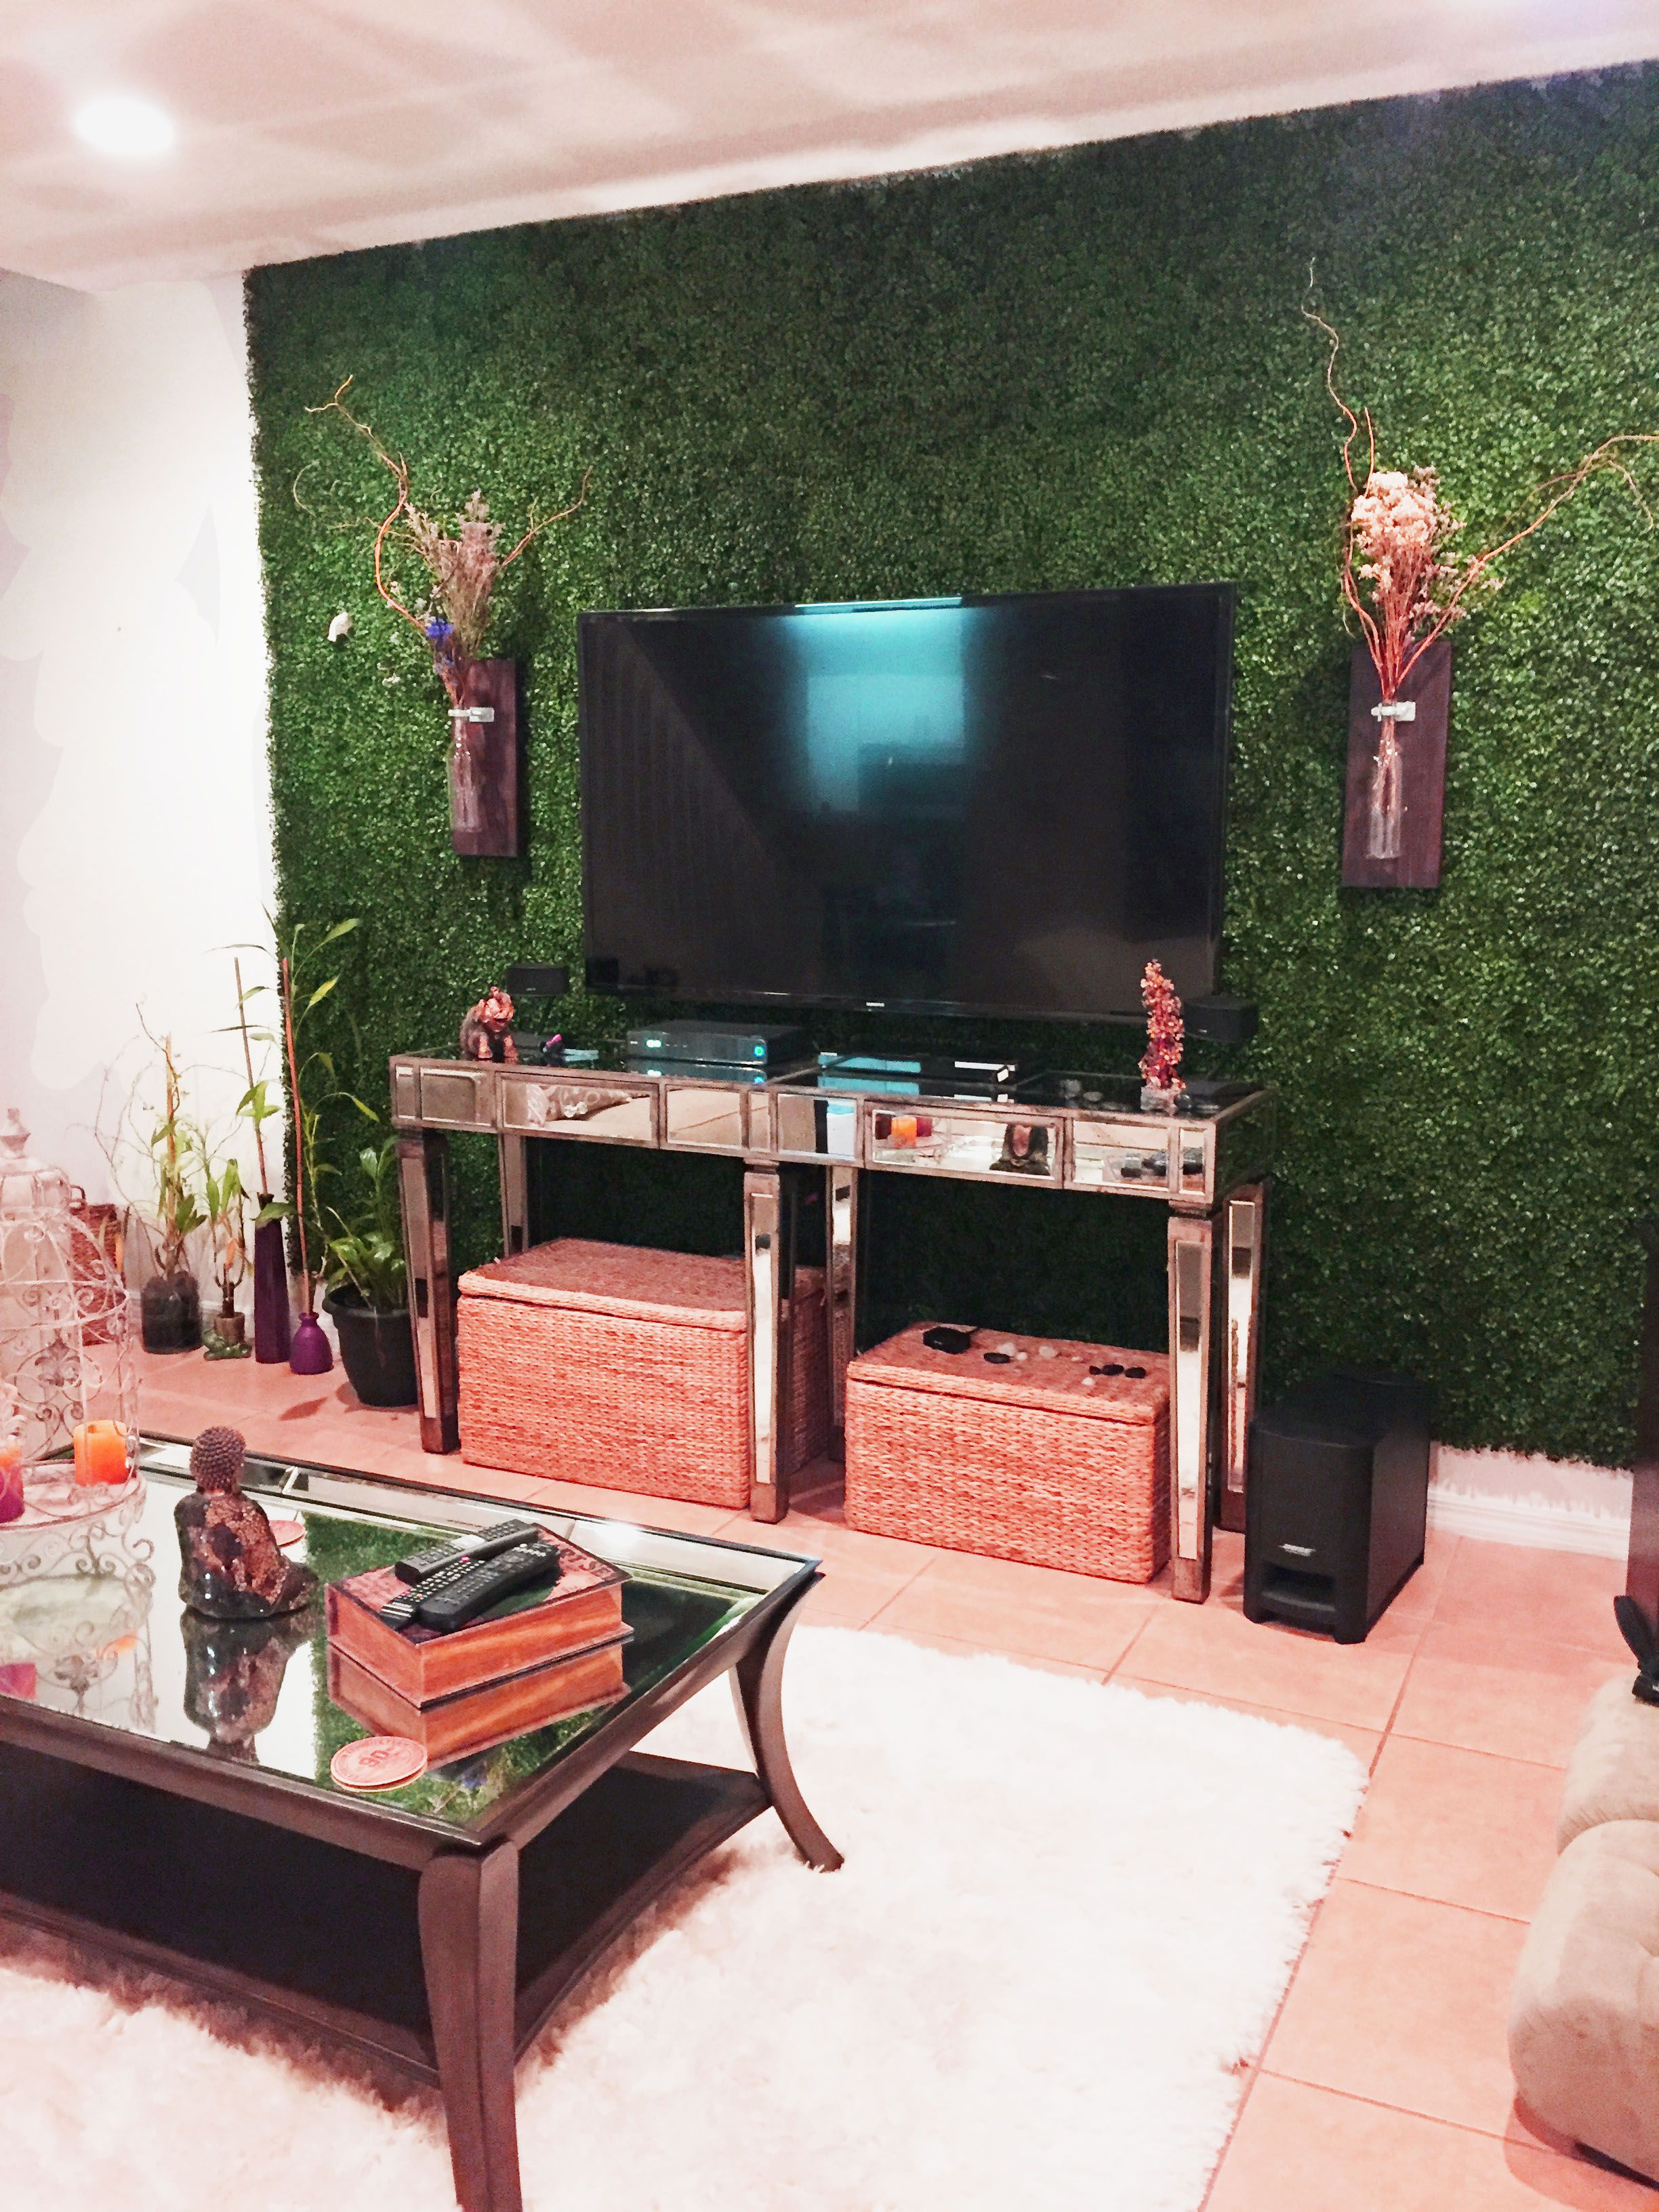 Give a fresh look to your living room with this artificial leaf panels. |  Living room decor on a budget, Artificial grass wall, House plants decor